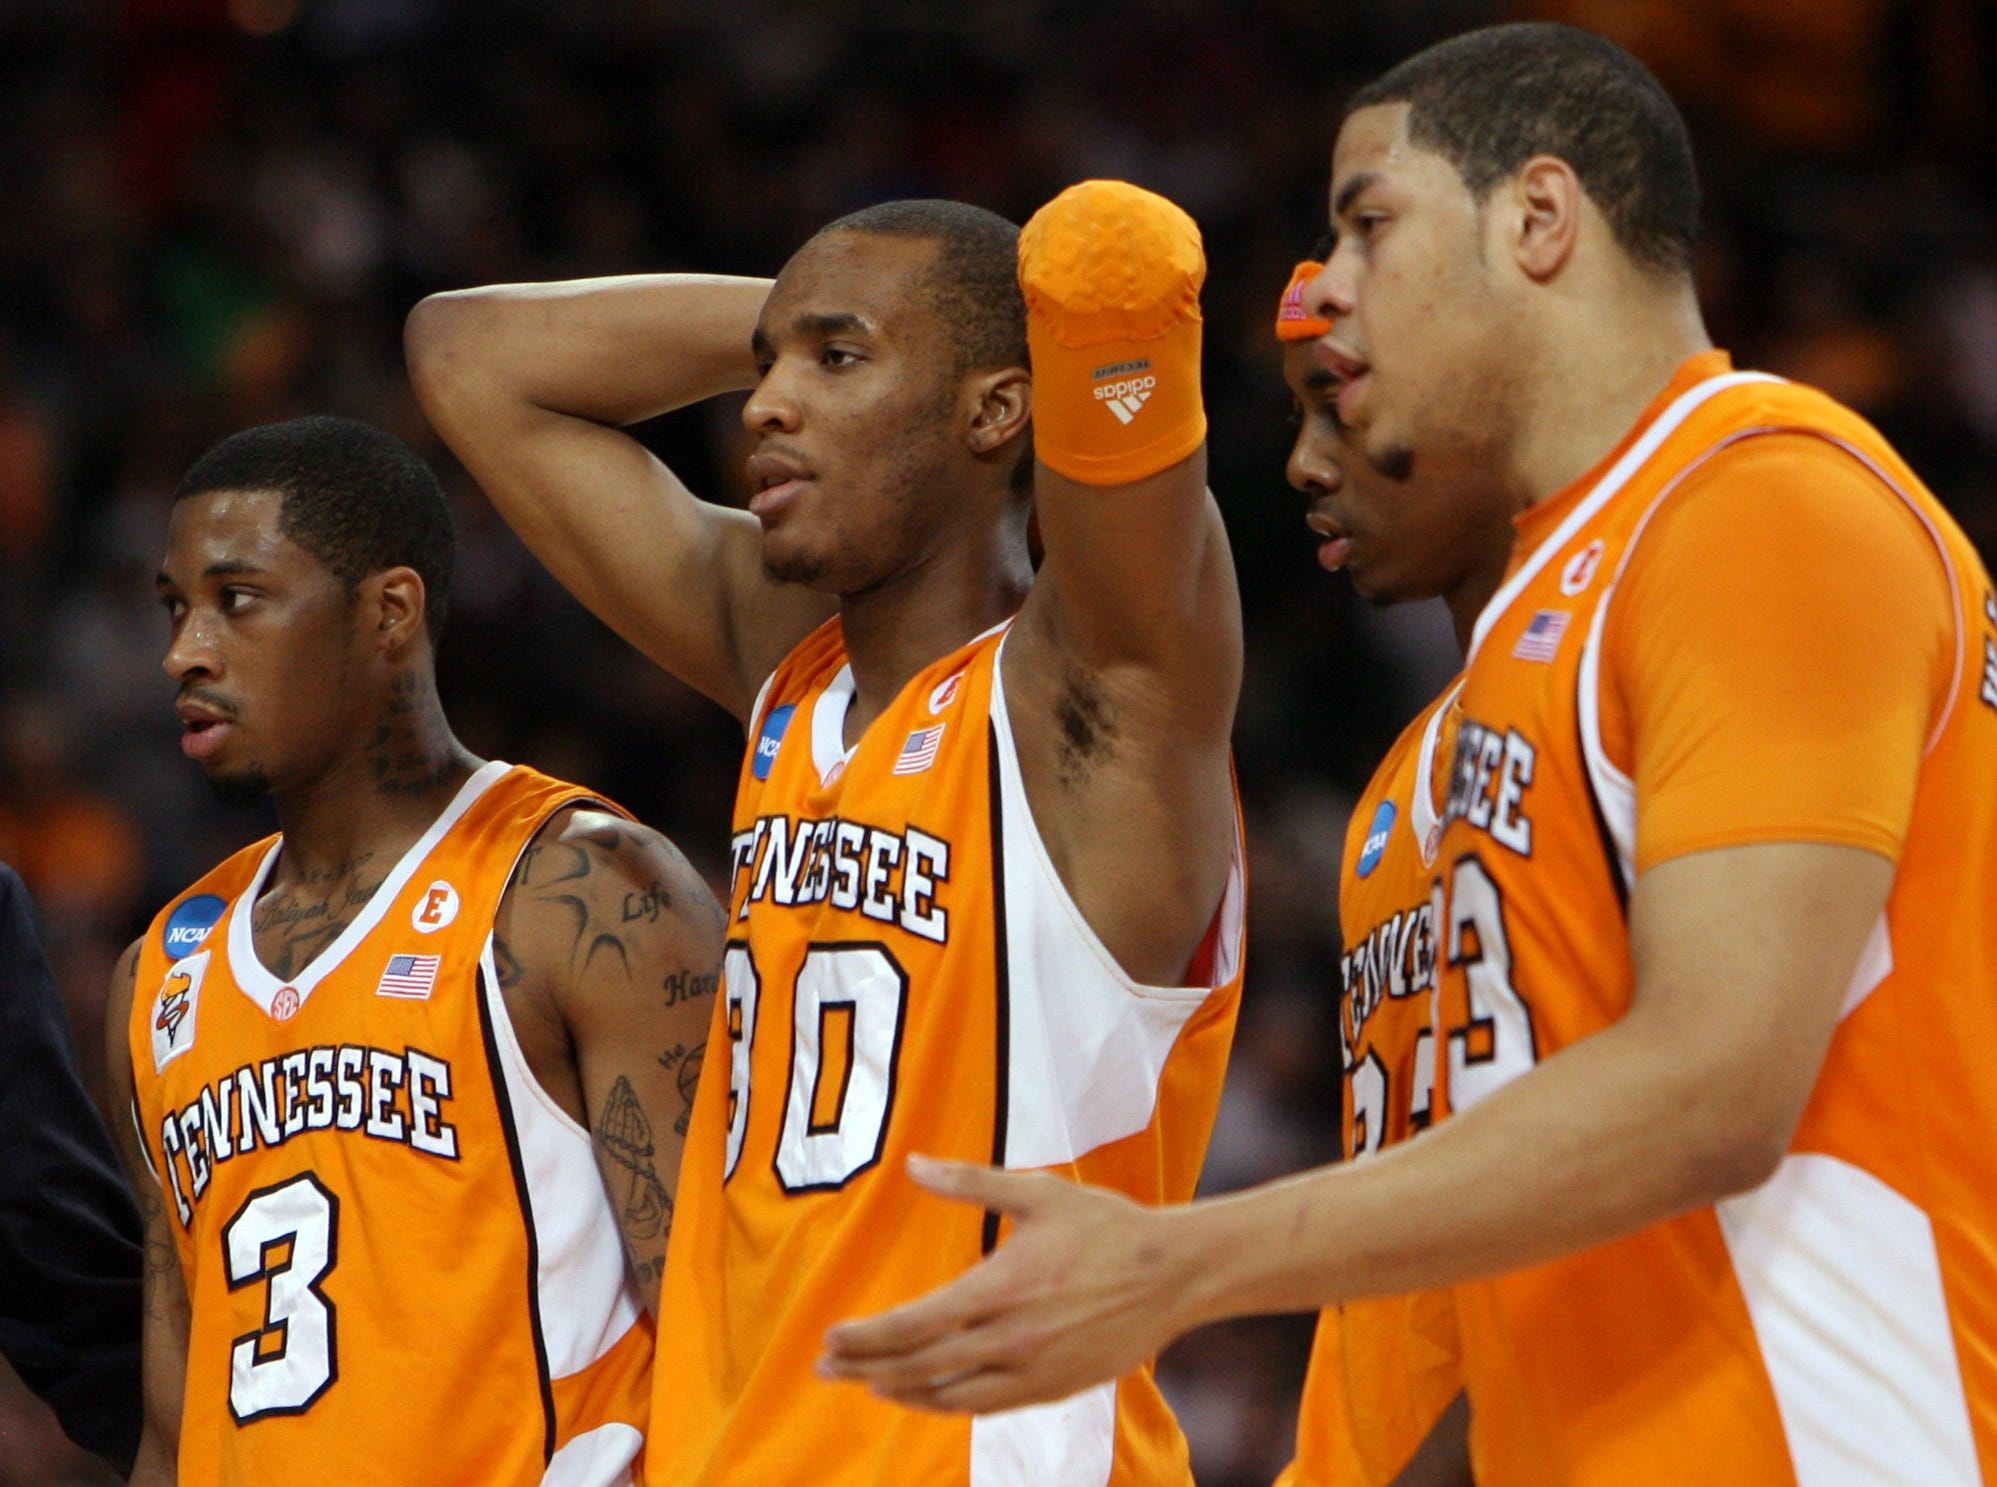 Tennessee's Bobby Maze, J.P. Prince, Scotty Hopson and Brian Williams walk to the bench after Prince was called with a foul against Michigan State in the final seconds of the NCAA tournament game at the Edward Jones Dome in St. Louis, Mo., Sunday, Mar. 28, 2010.